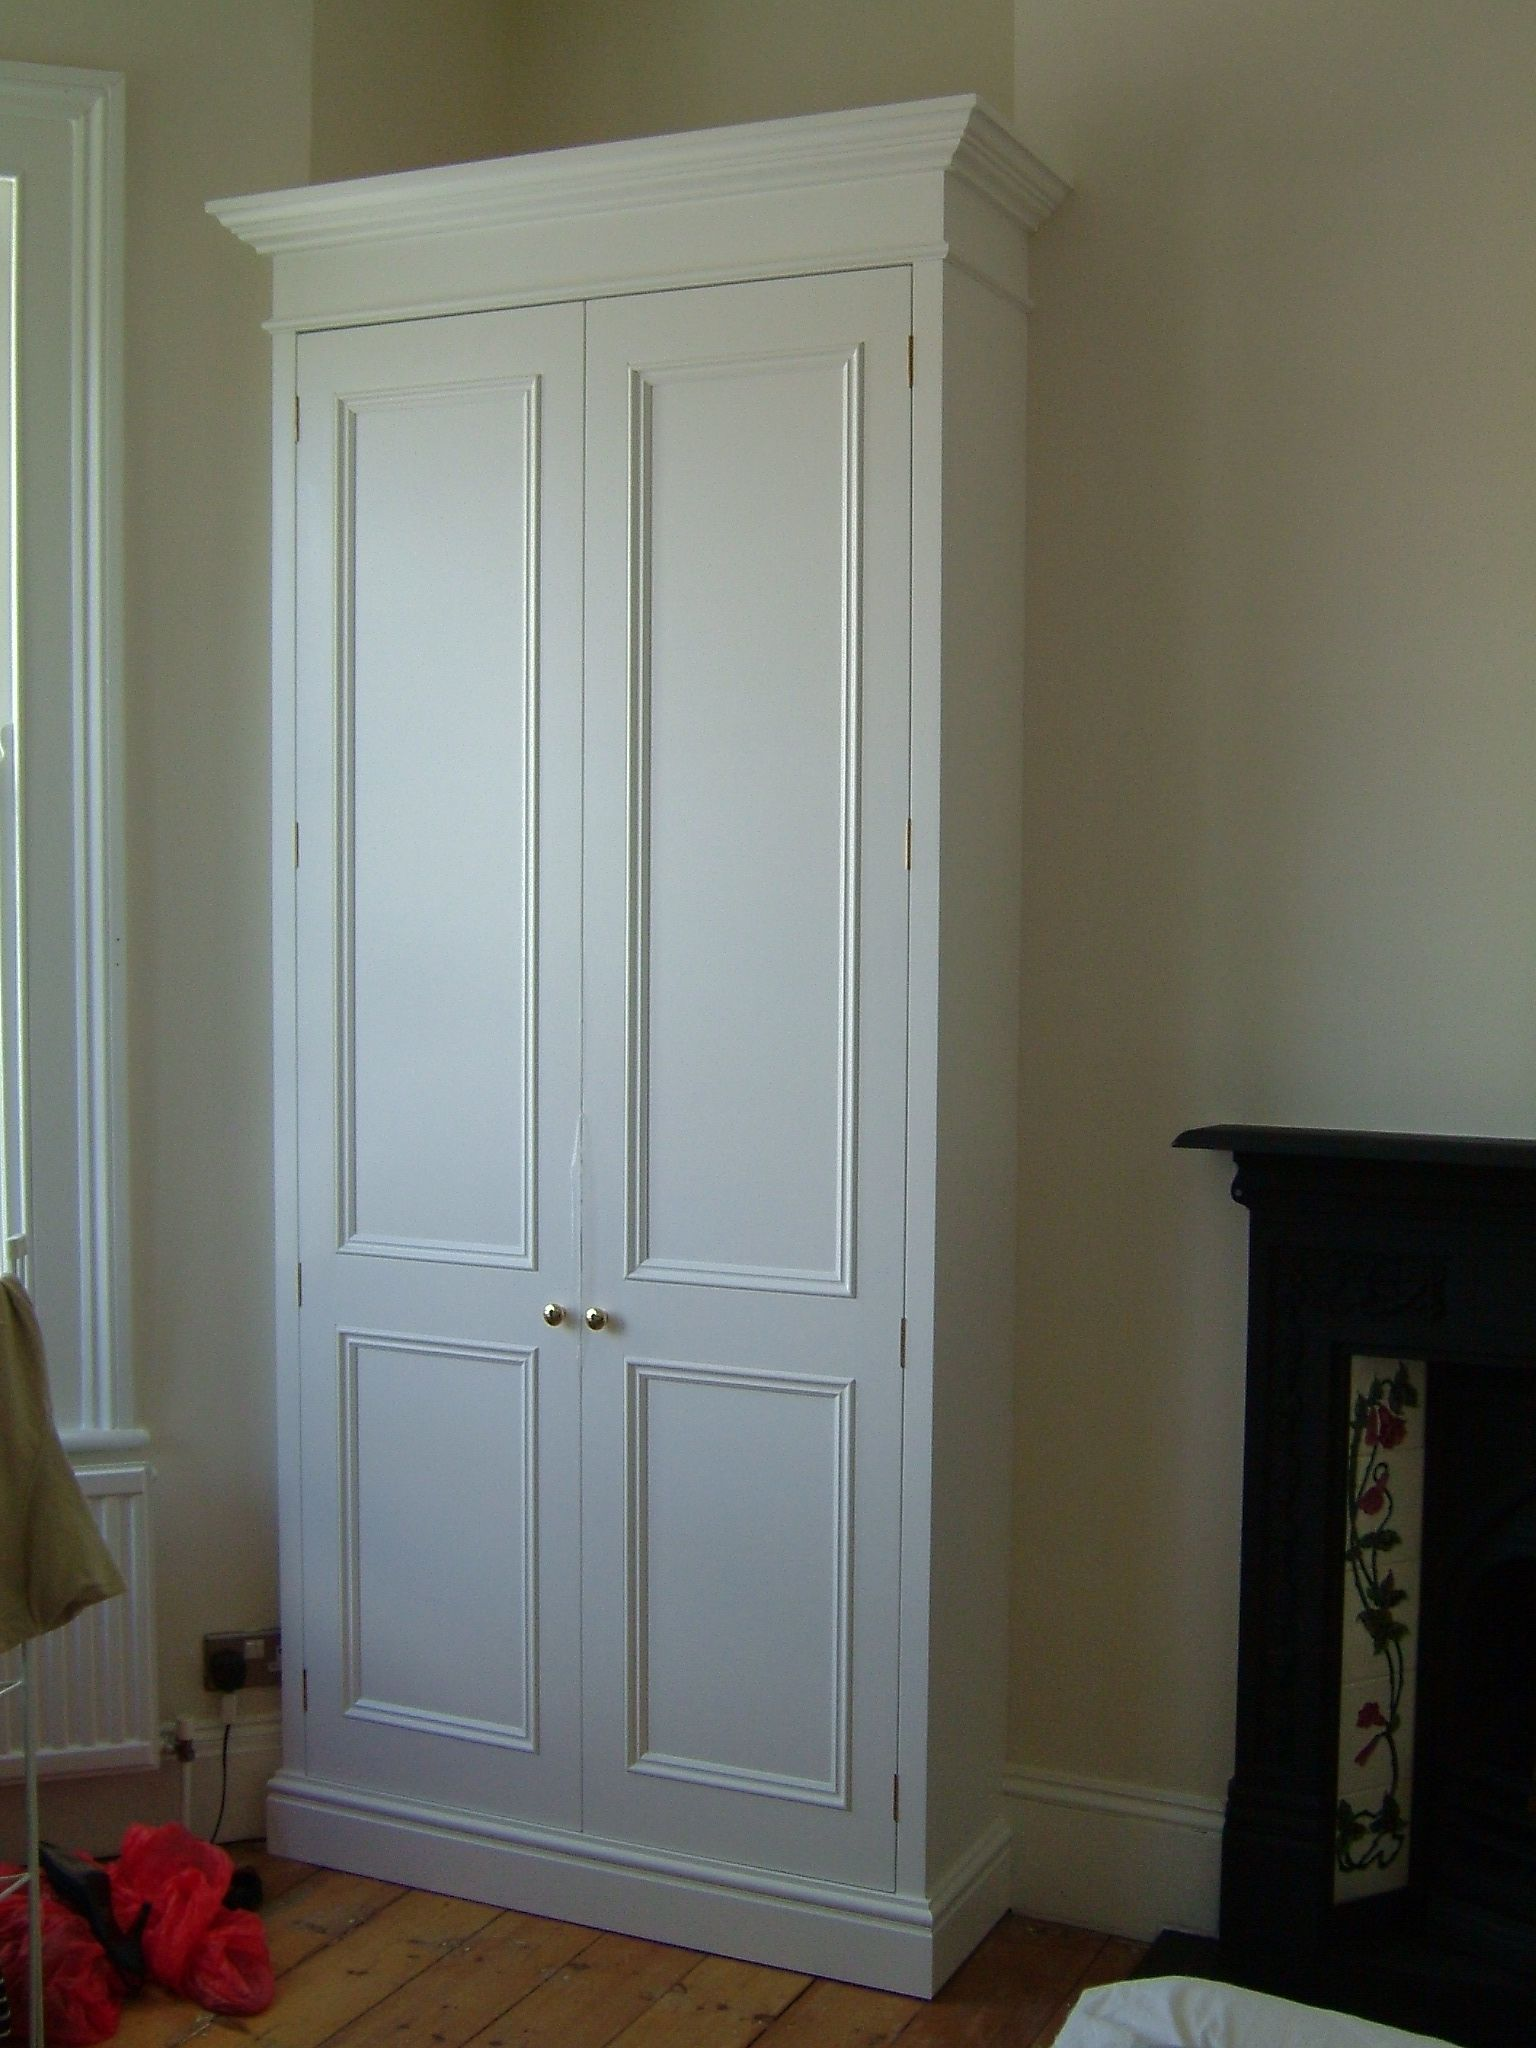 Bedroom Wardrobe Wardrobe Doors Wardrobe Ideas Master Bedroom Alcove